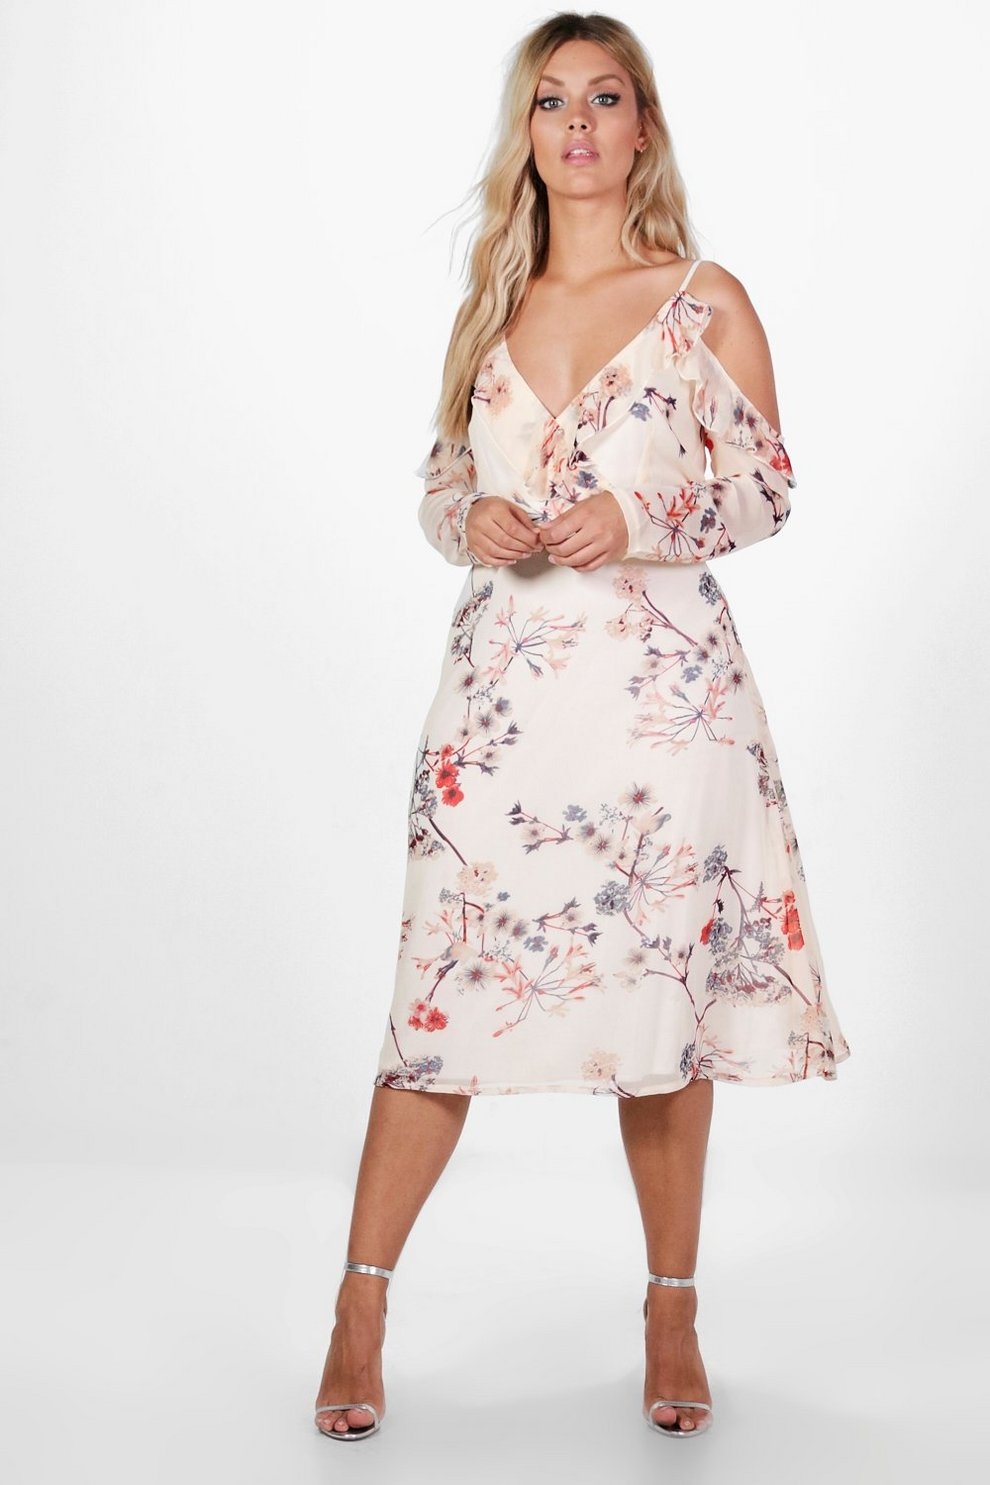 Boohoo Chiffon Floral Midi Skater Dress Popular For Sale Pictures Cheap Online I1IeB1r7Us